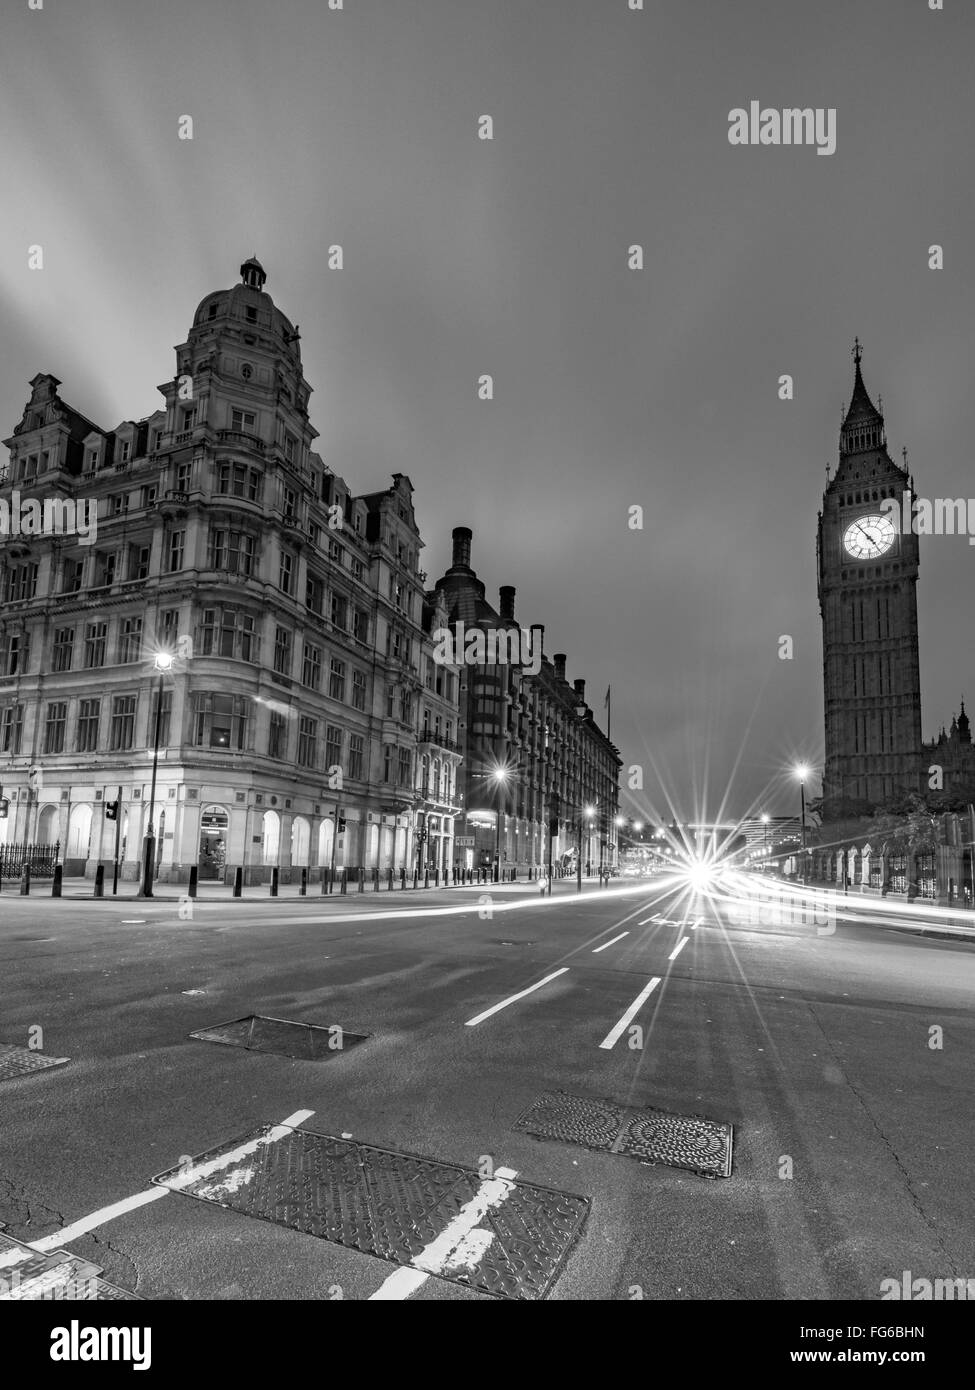 Light Trails On Street Against Big Ben At Night - Stock Image